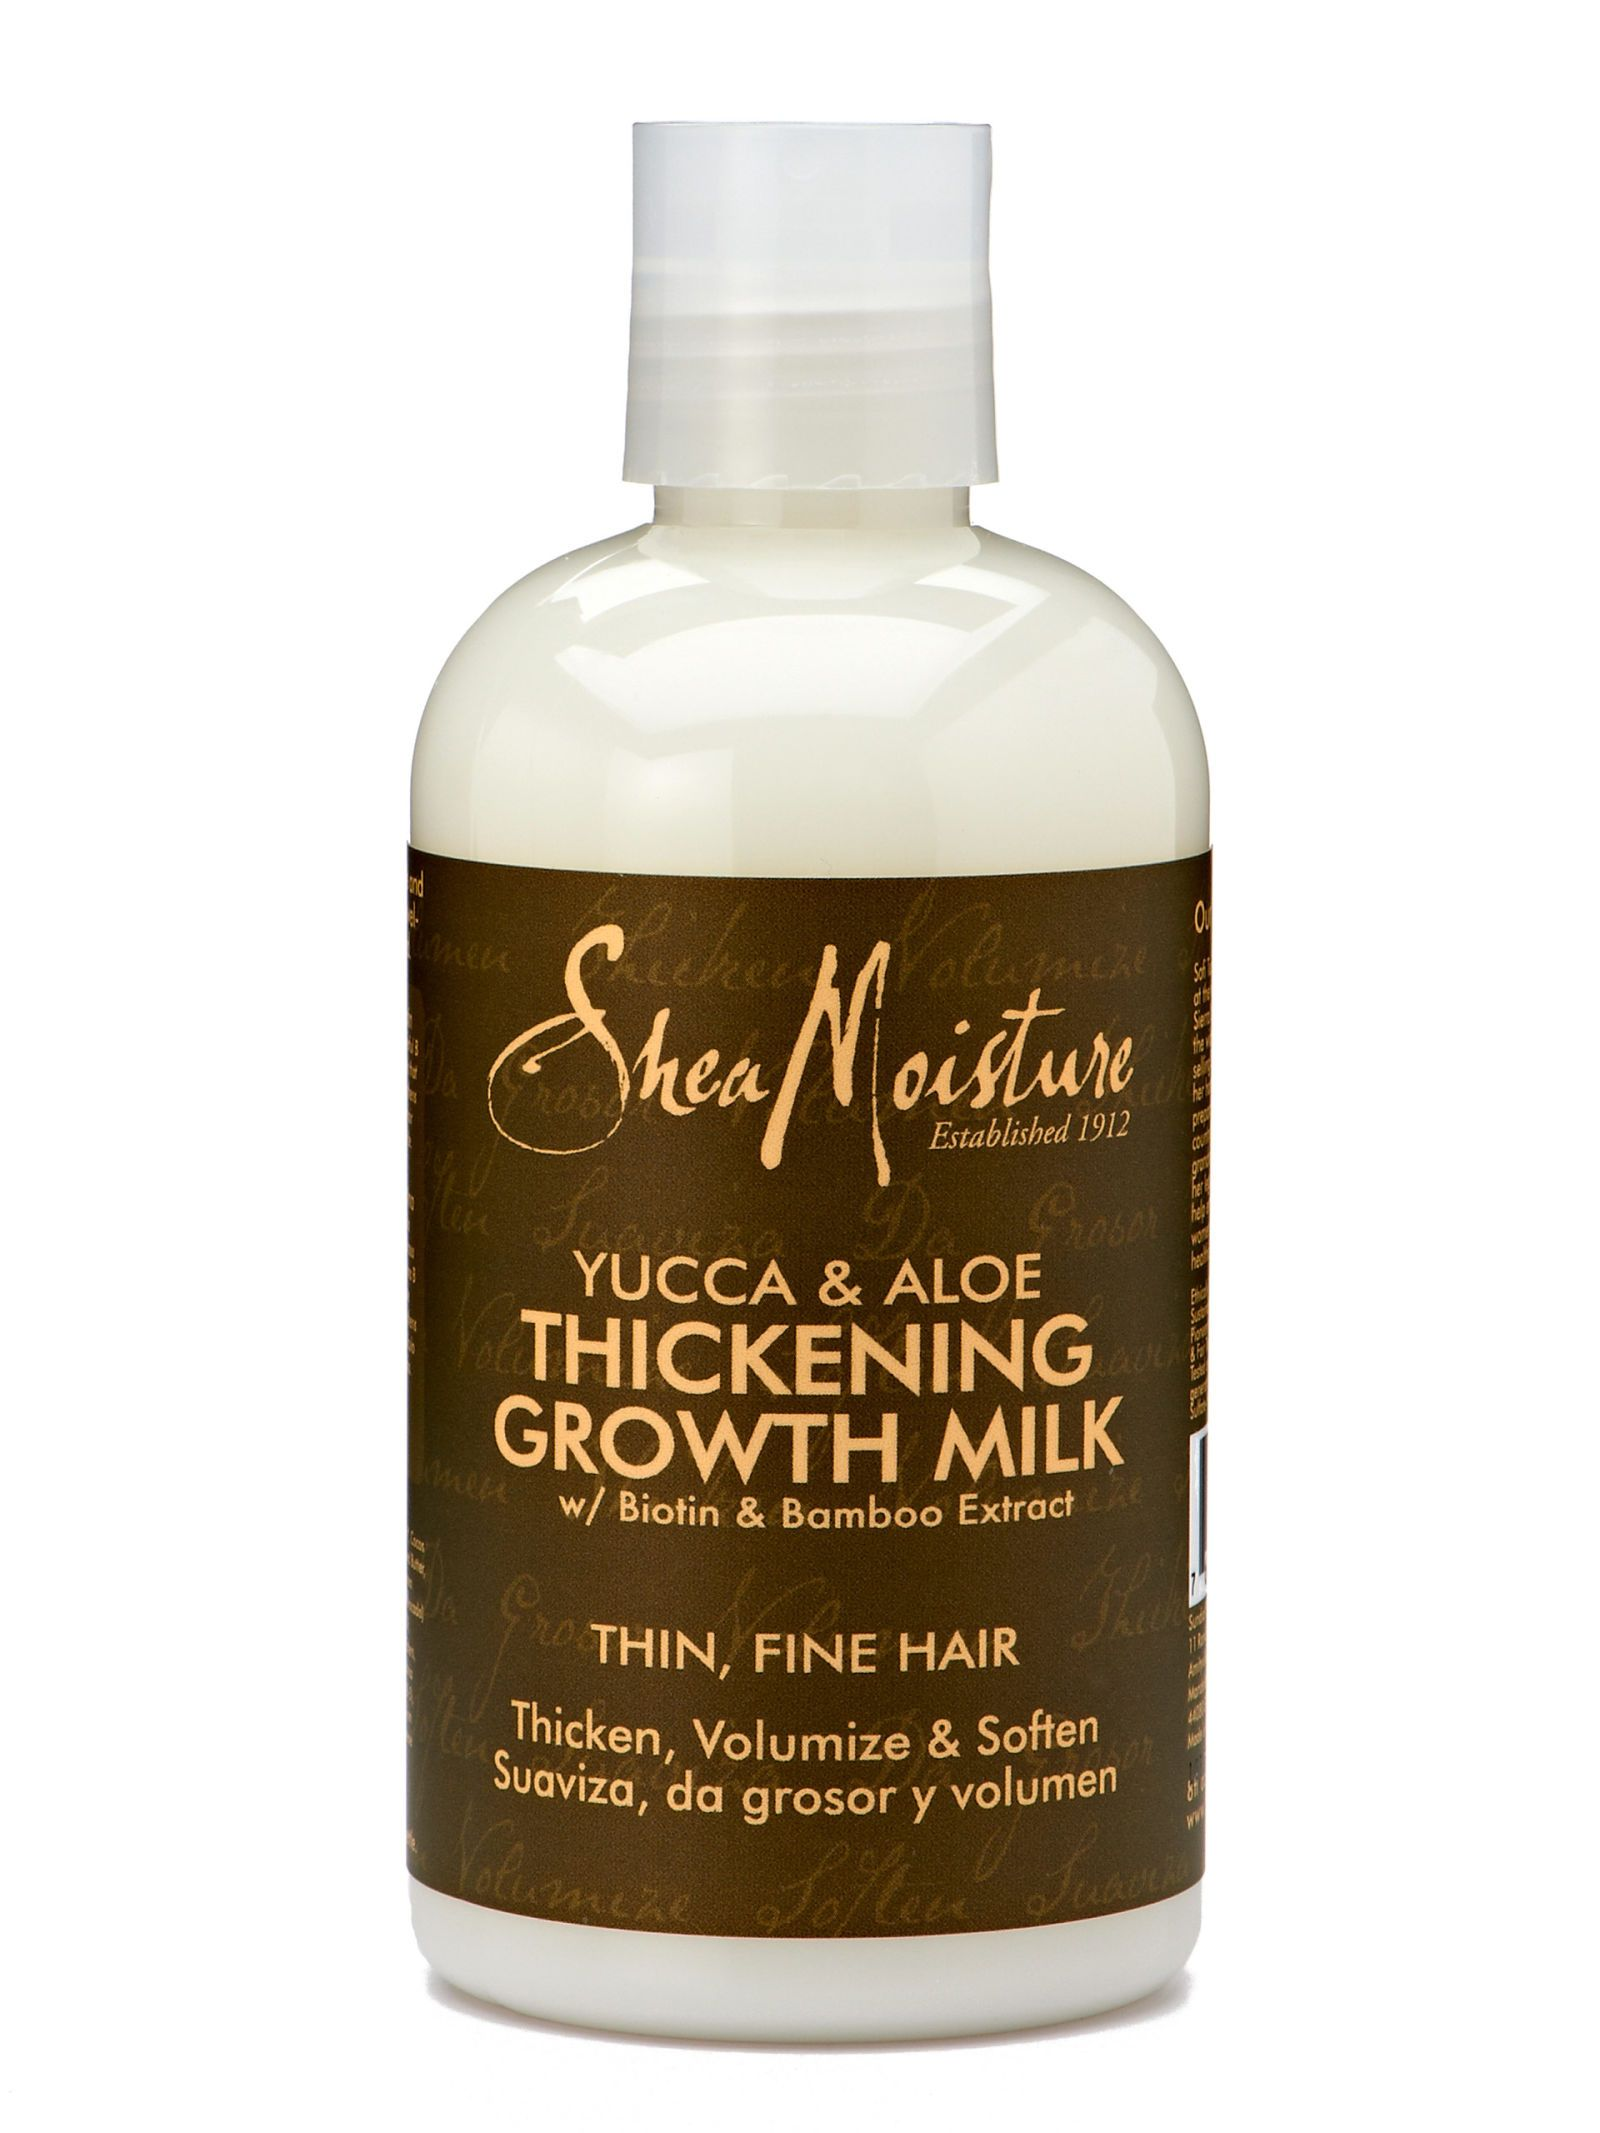 The 18 Best Hair-Thickening Products